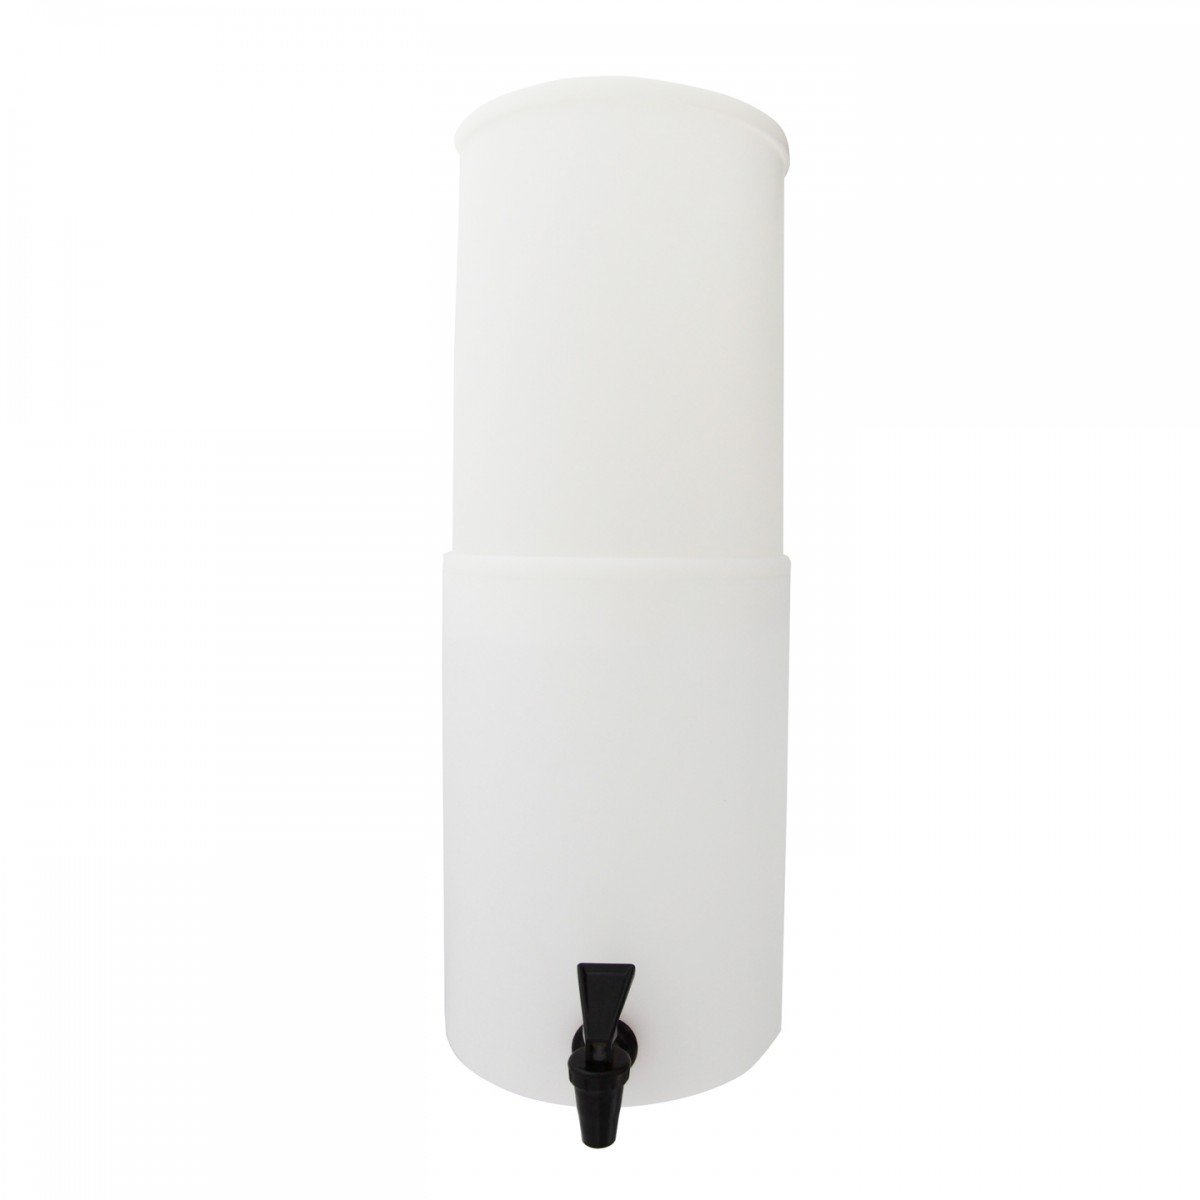 Gravity Water Filters 74